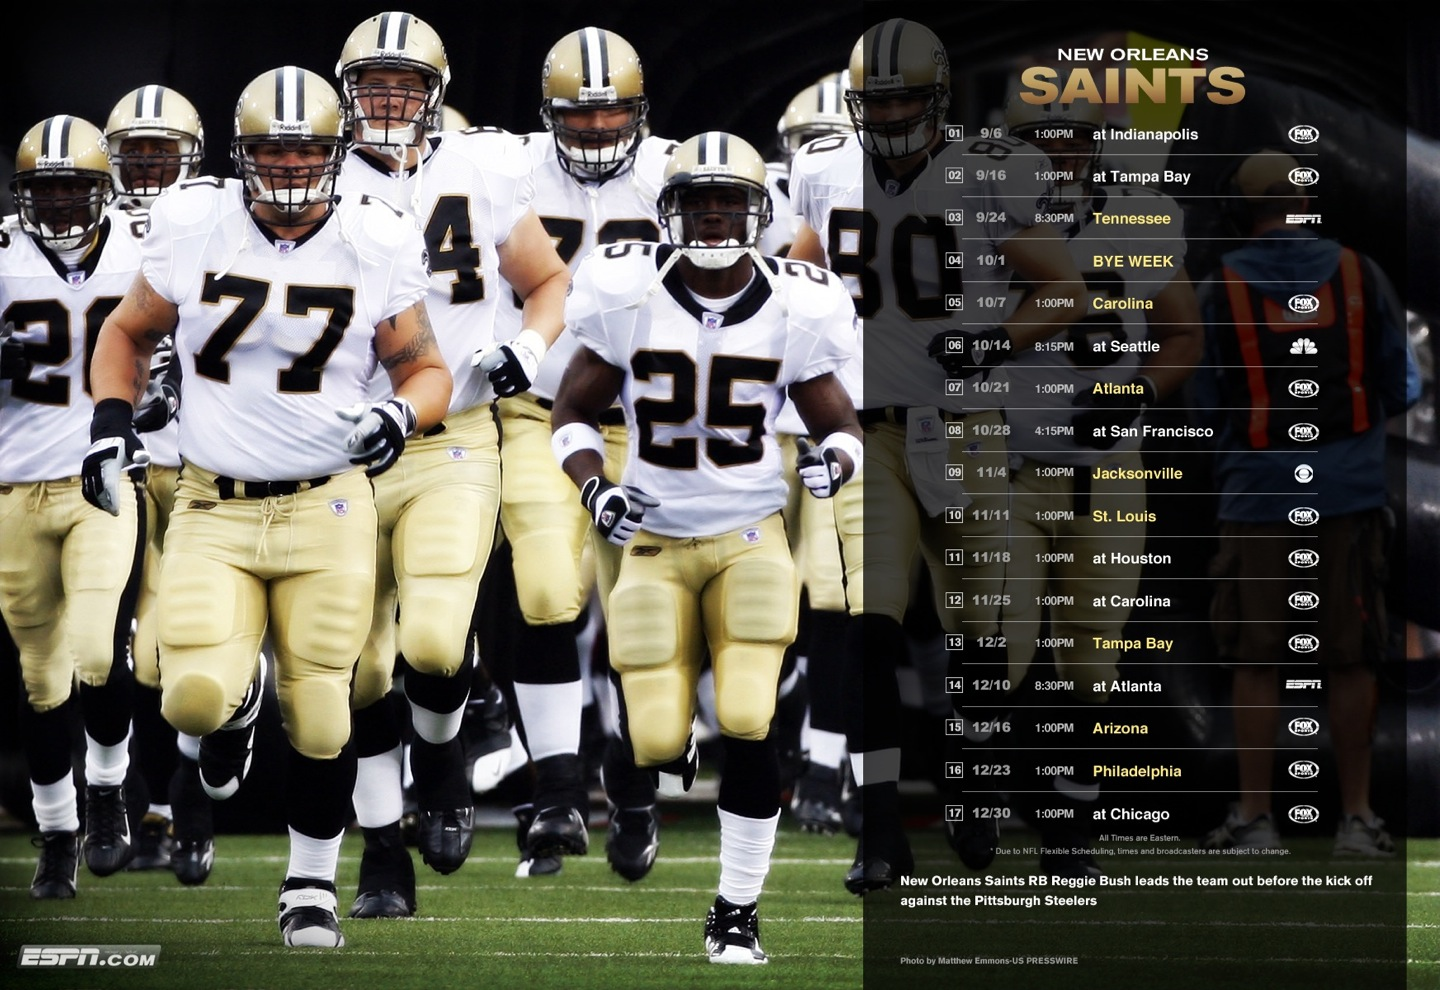 Related Pictures Lsu Saints Schedule Wallpaper Pictures 1440x990